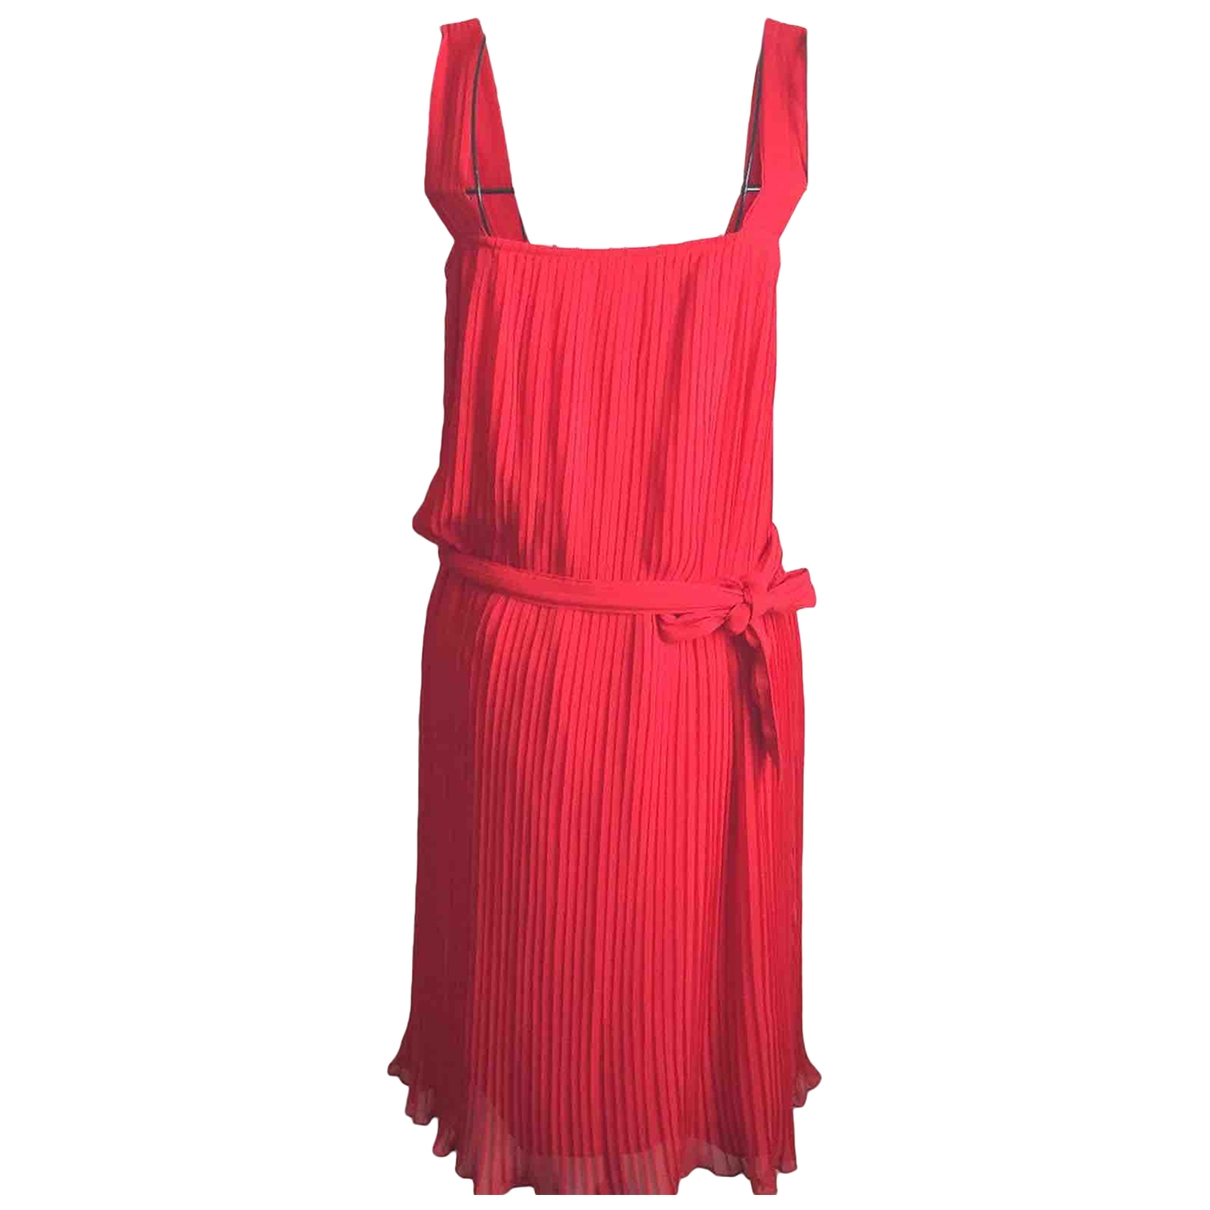 Zara \N Kleid in  Rot Synthetik